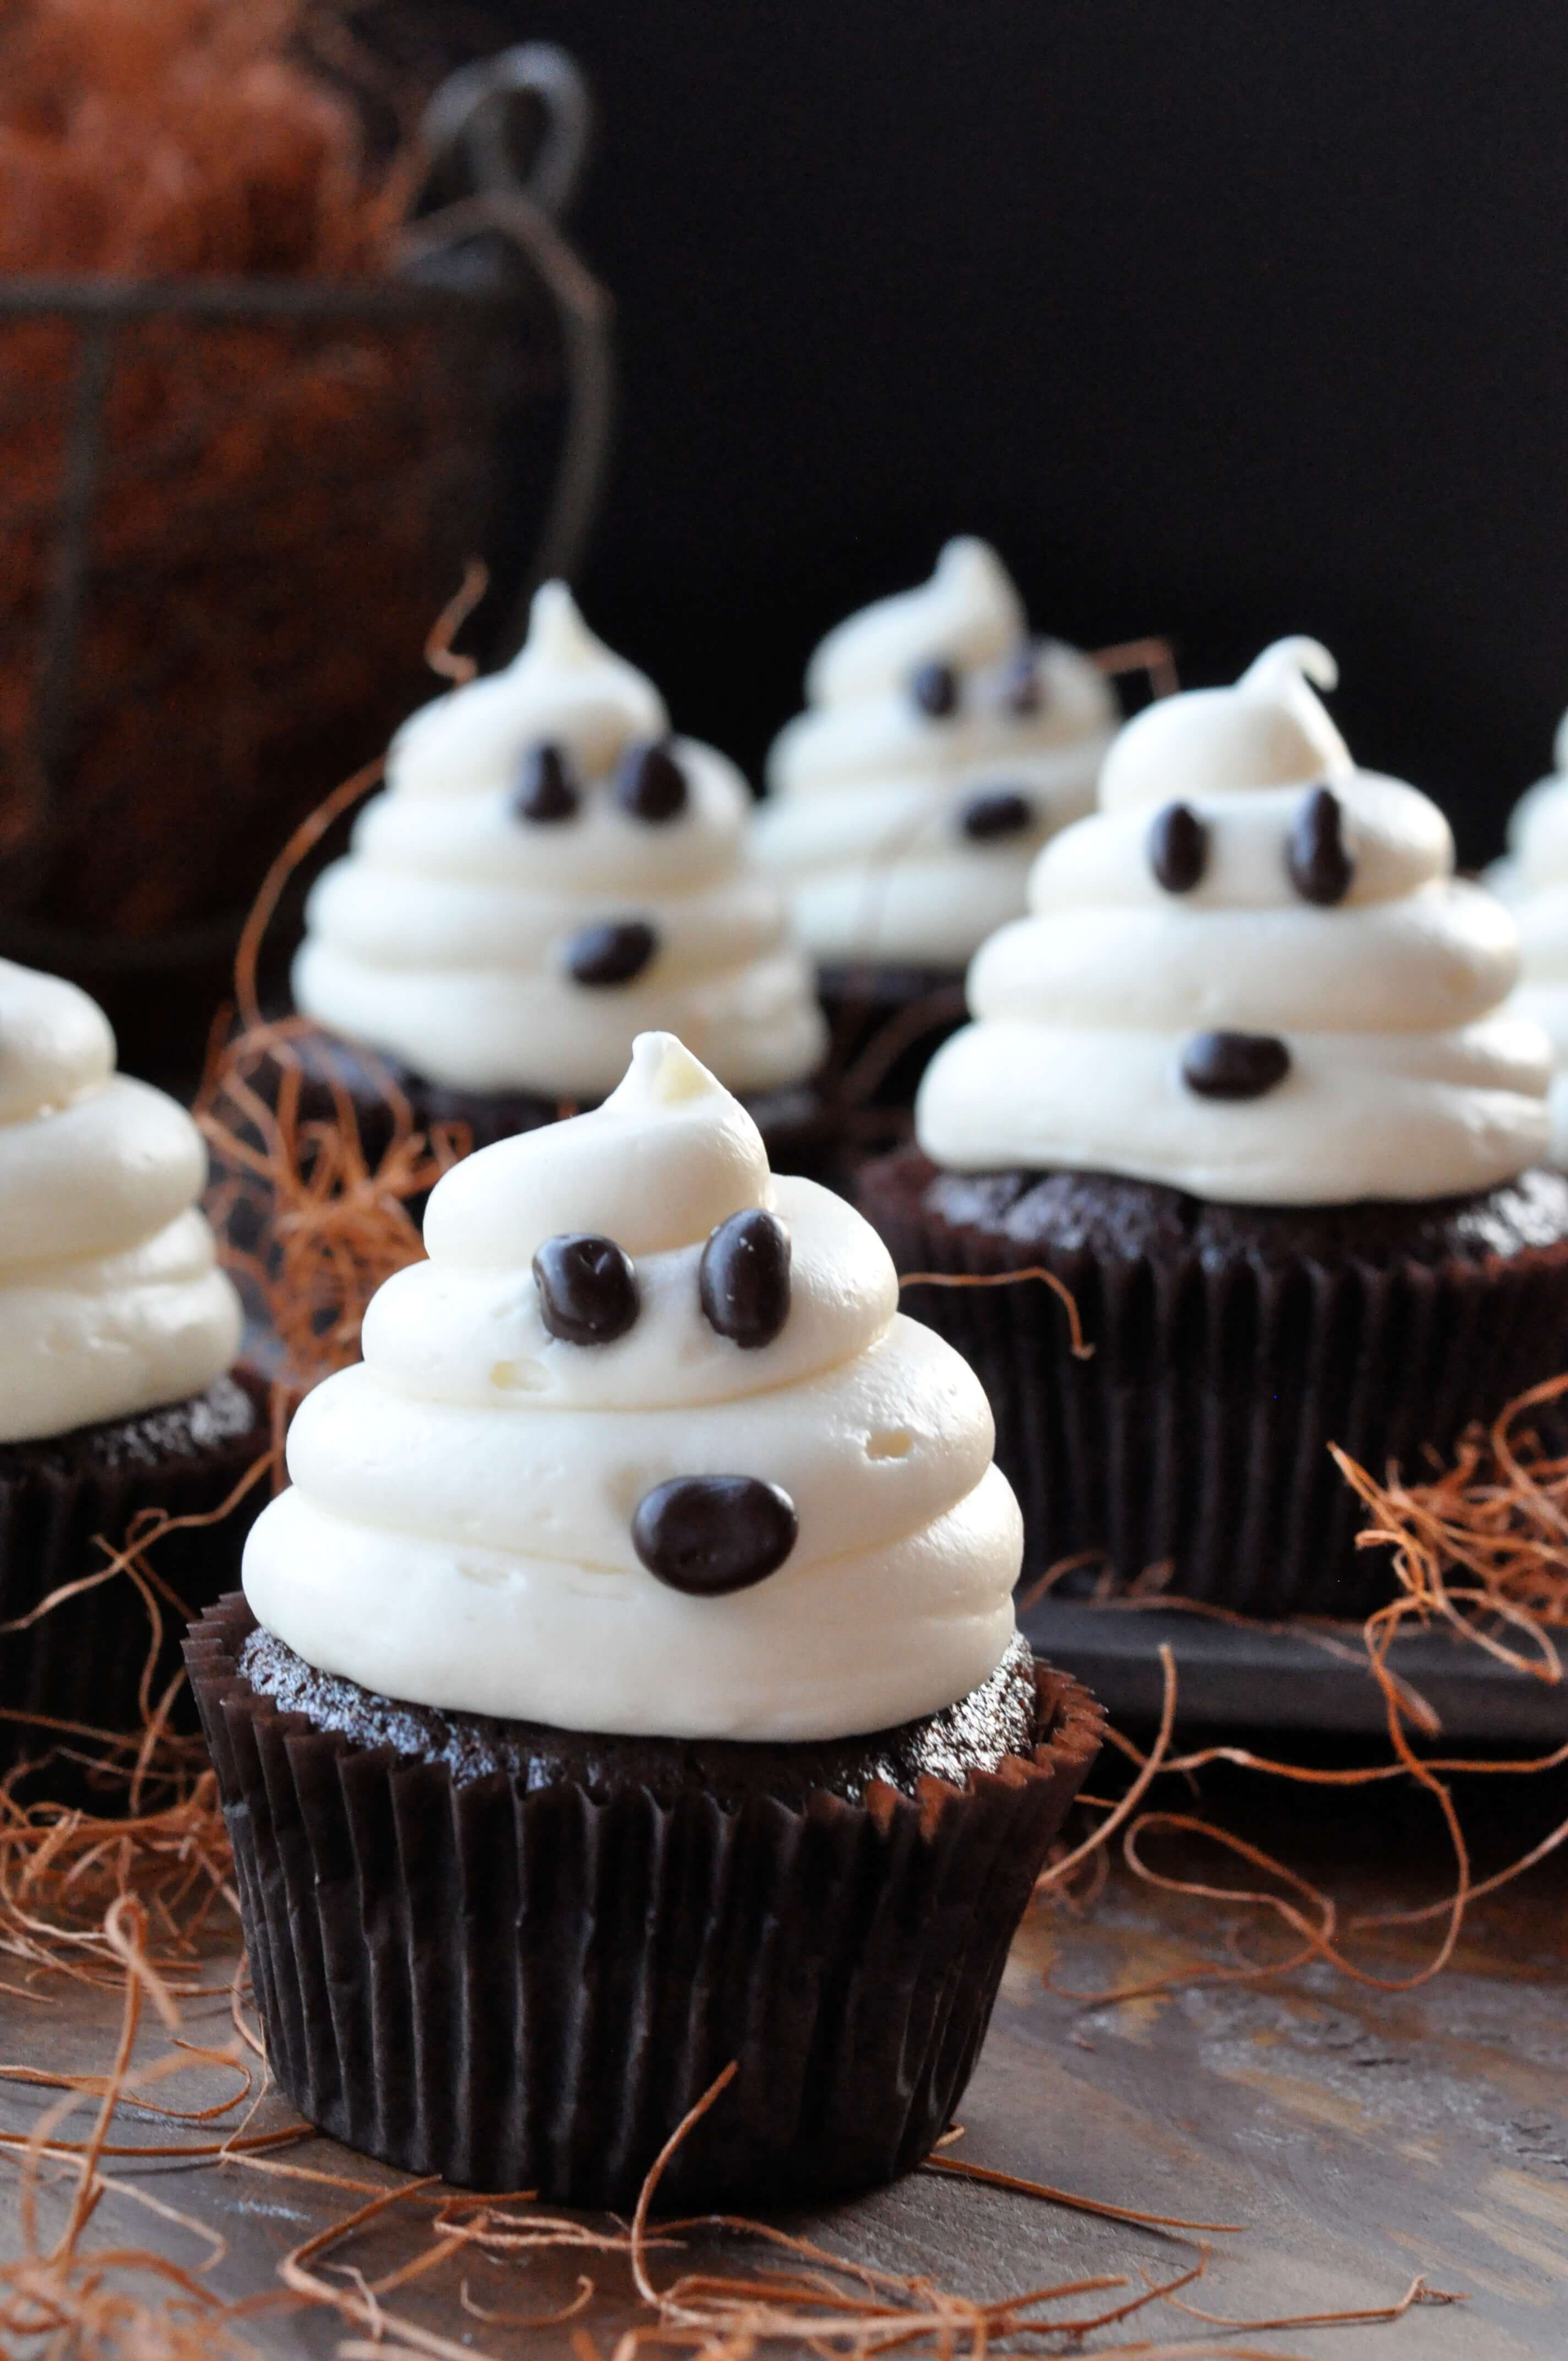 Halloween Cakes And Cupcakes  Halloween Ghosts on Carrot Cake Recipe—Fast and Easy